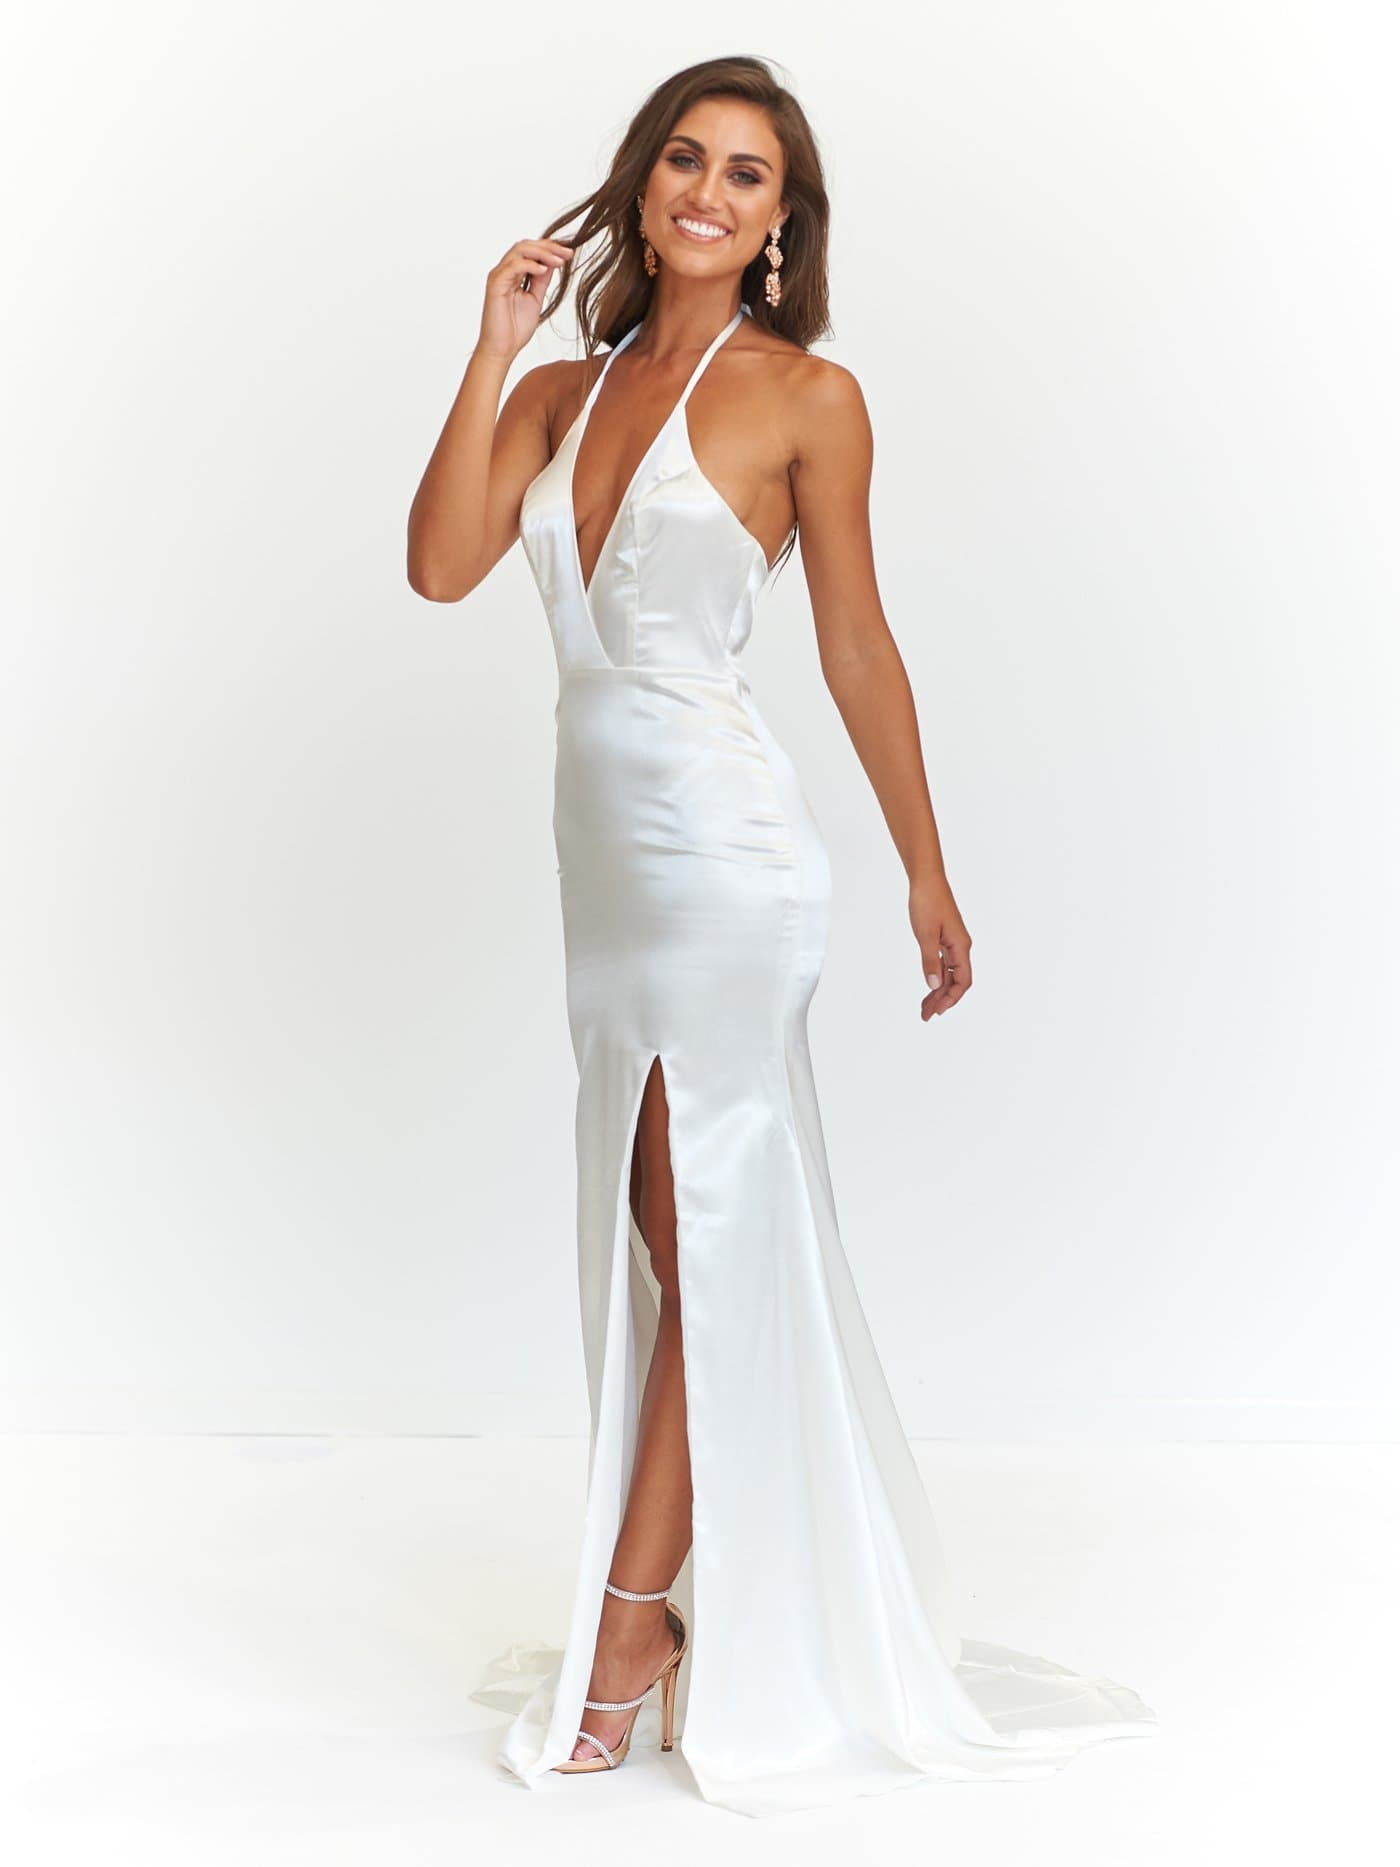 A&N Alyssa - White Satin Formal Dress with V-Neckline and Side Slit